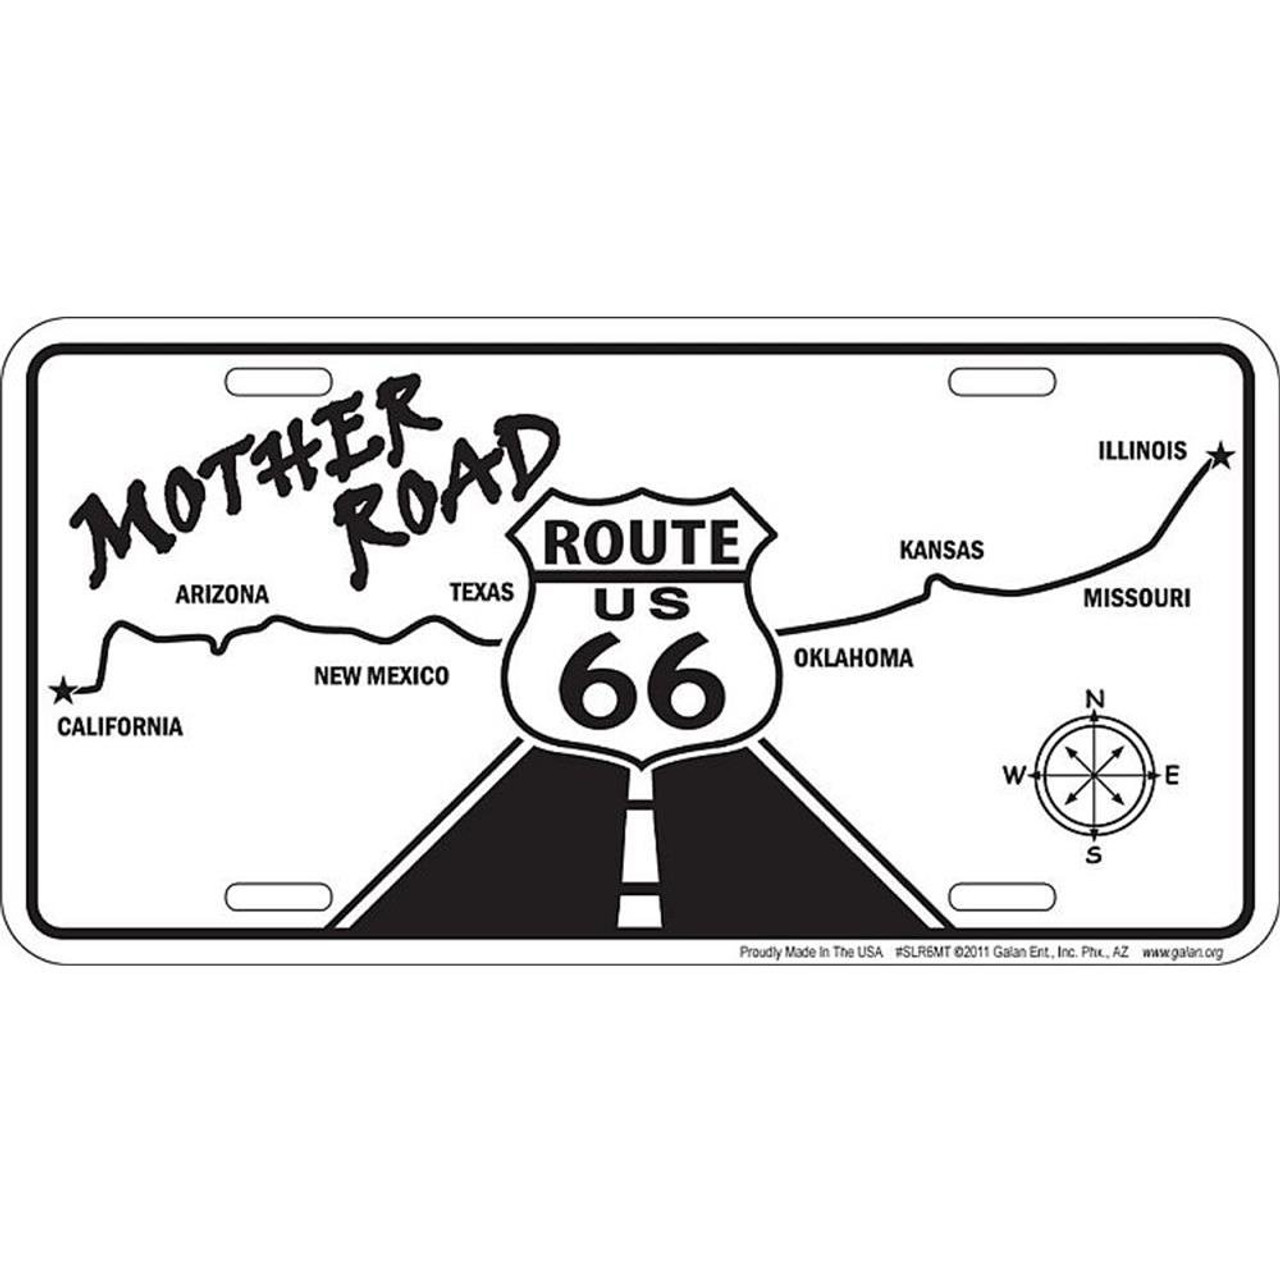 Route 66 Mother Road Map License Plate on las vegas map, greasewood arizona map, golden valley arizona map, durango arizona map, mohave county arizona map, klondyke arizona map, havasu city arizona map, two guns arizona map, skywalk arizona map, las cruces arizona map, route 66 arizona map, wupatki national monument arizona map, phoenix map, mesquite arizona map, reno arizona map, tucson map, humboldt arizona map, boise arizona map, santa fe arizona map, needles california map,